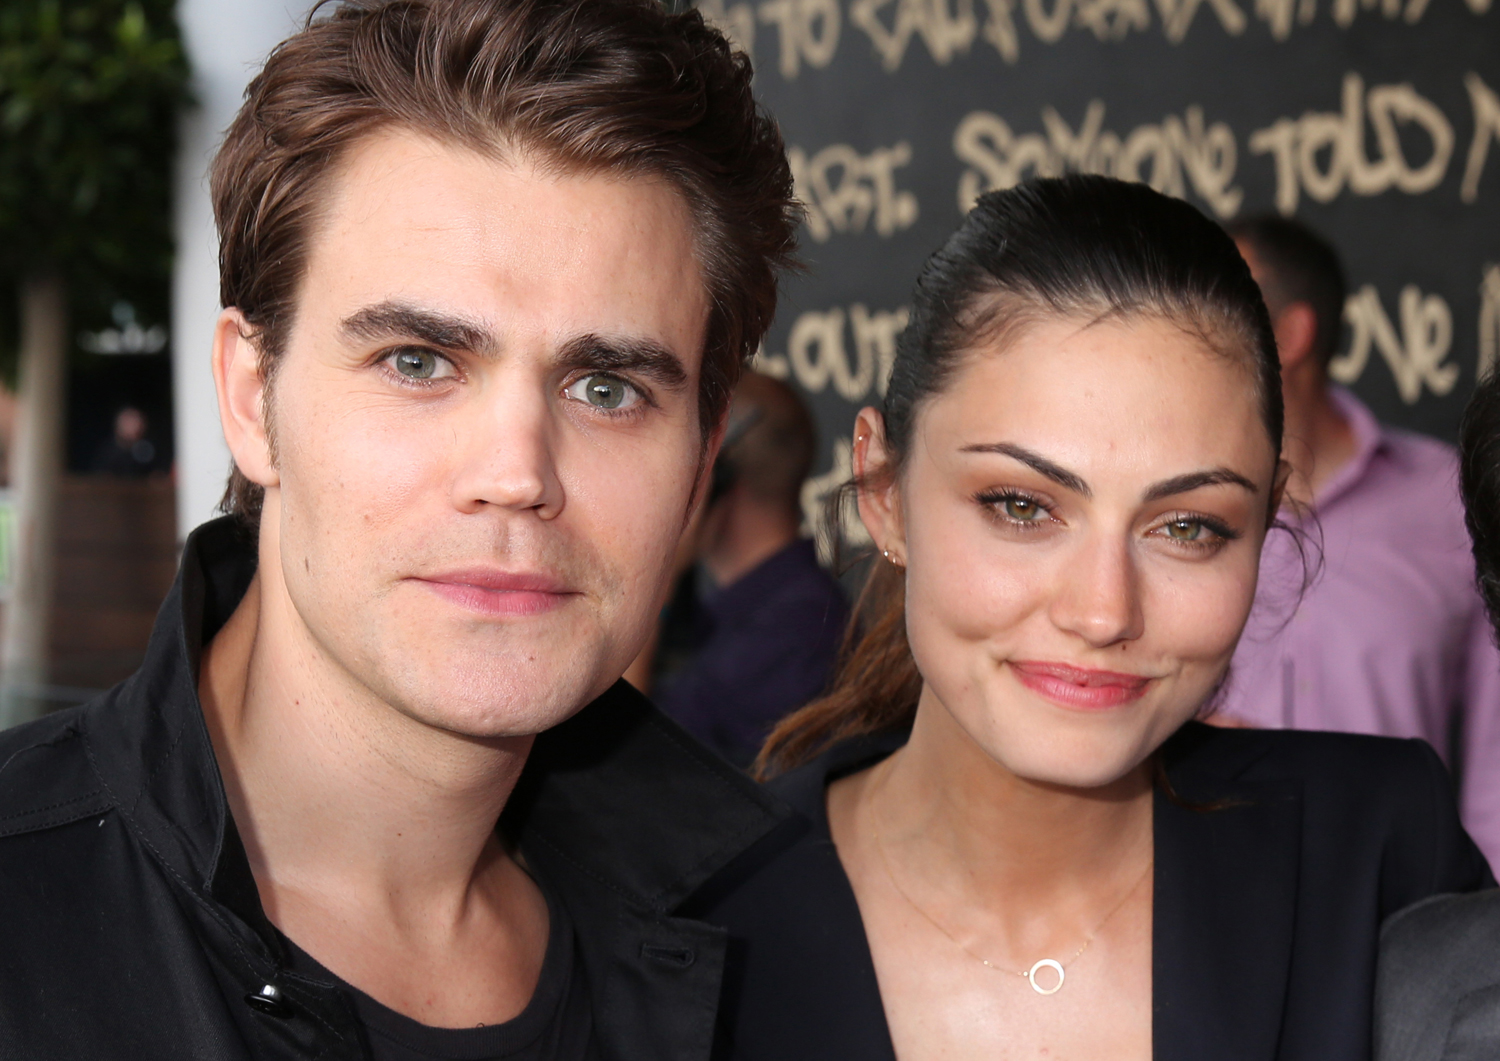 paul wesley and phoebe tonkin dating Paul wesley was spotted out on a date with his former vampire diaries costar phoebe tonkin on saturday, sept 21.